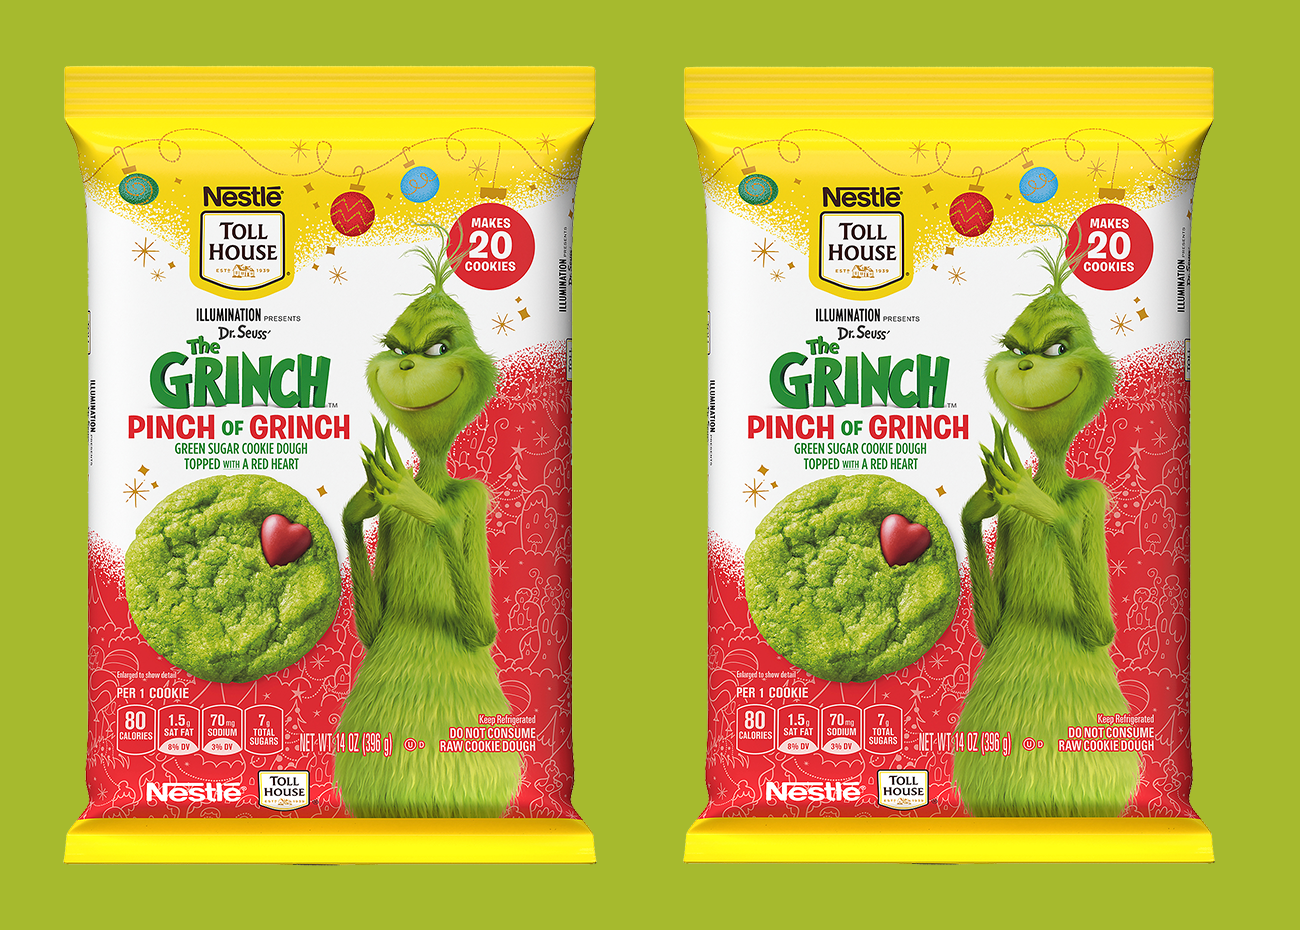 Nestle Toll House Pinch of Grinch Cookies